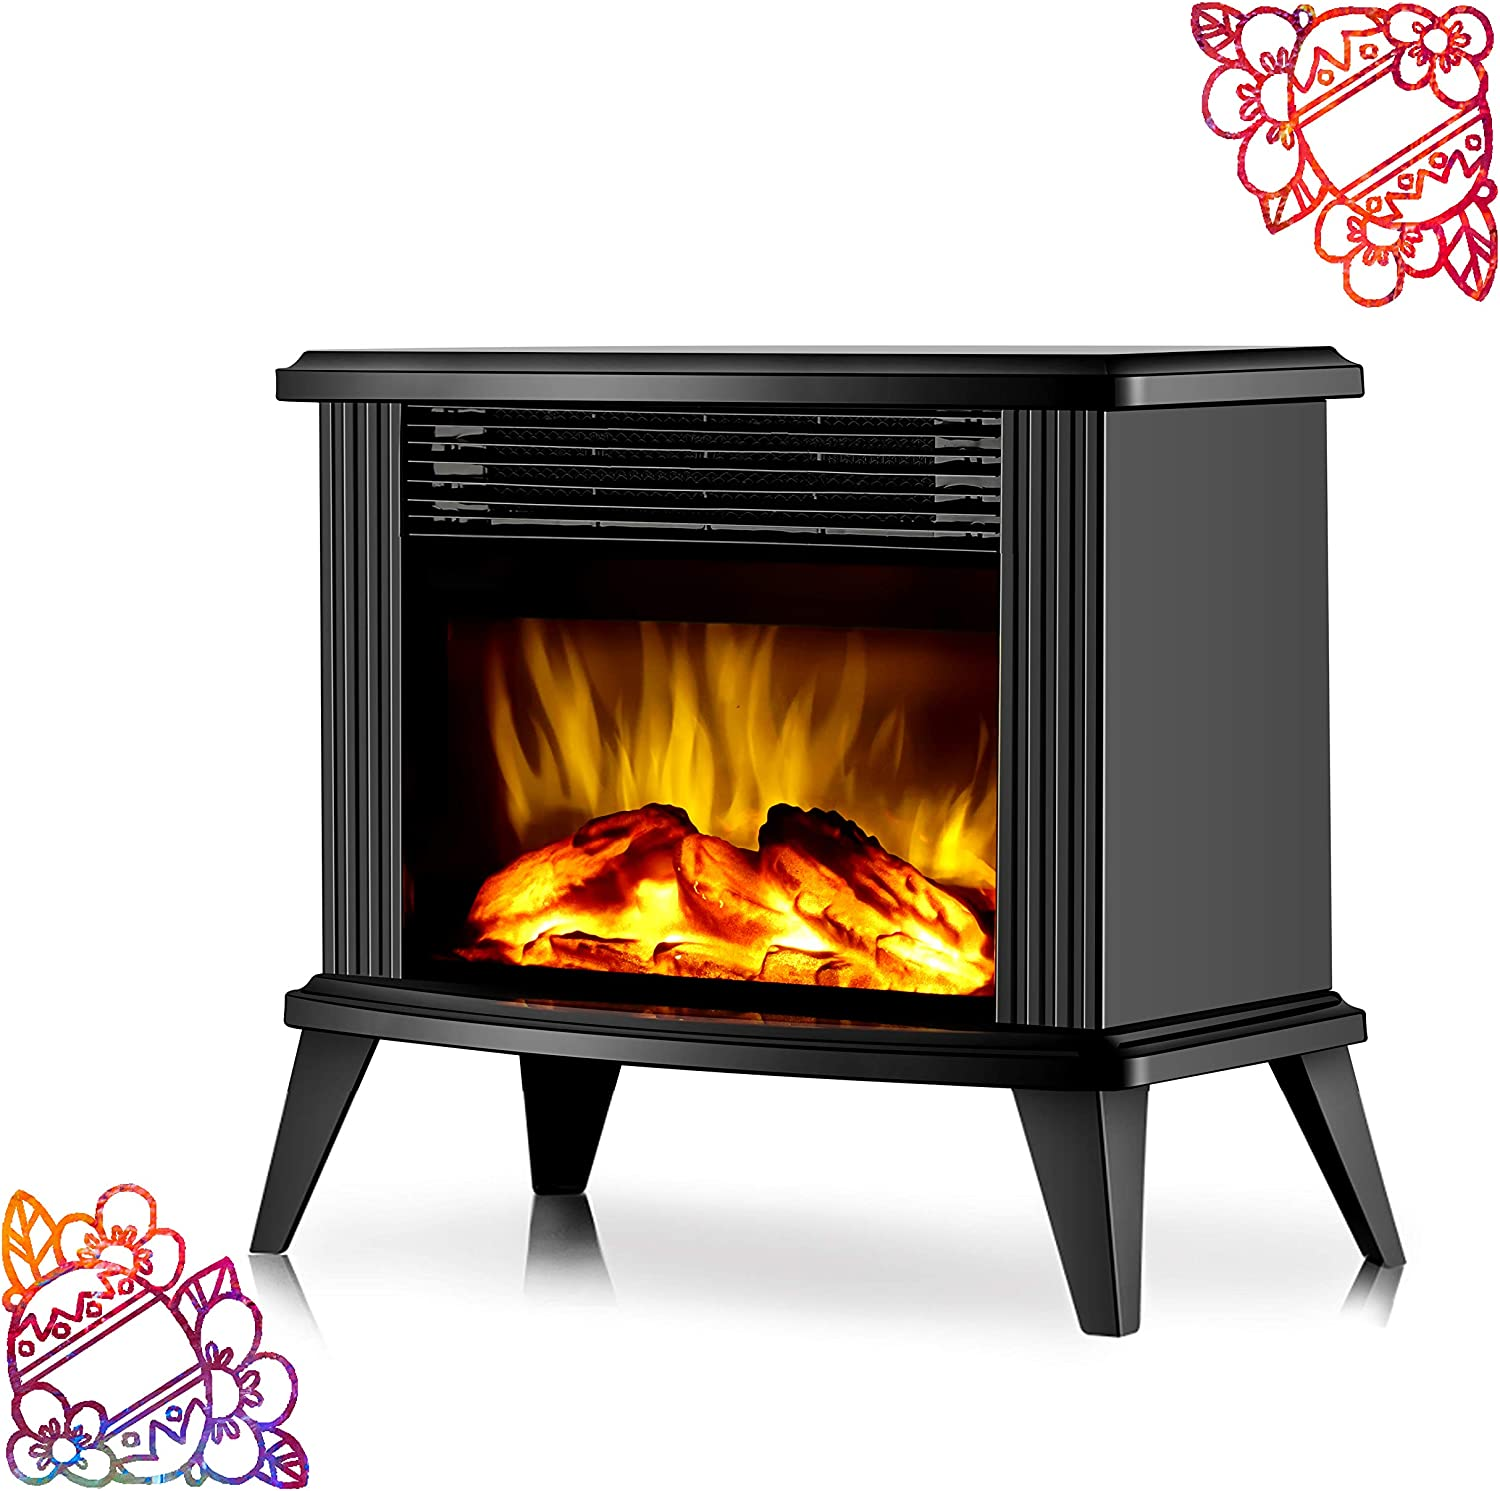 "DONYER POWER 13"" Height Mini Electric Fireplace Tabletop Portable Heater, 1500W, Black Metal Frame,Room Heater,Space Heater,Gift"